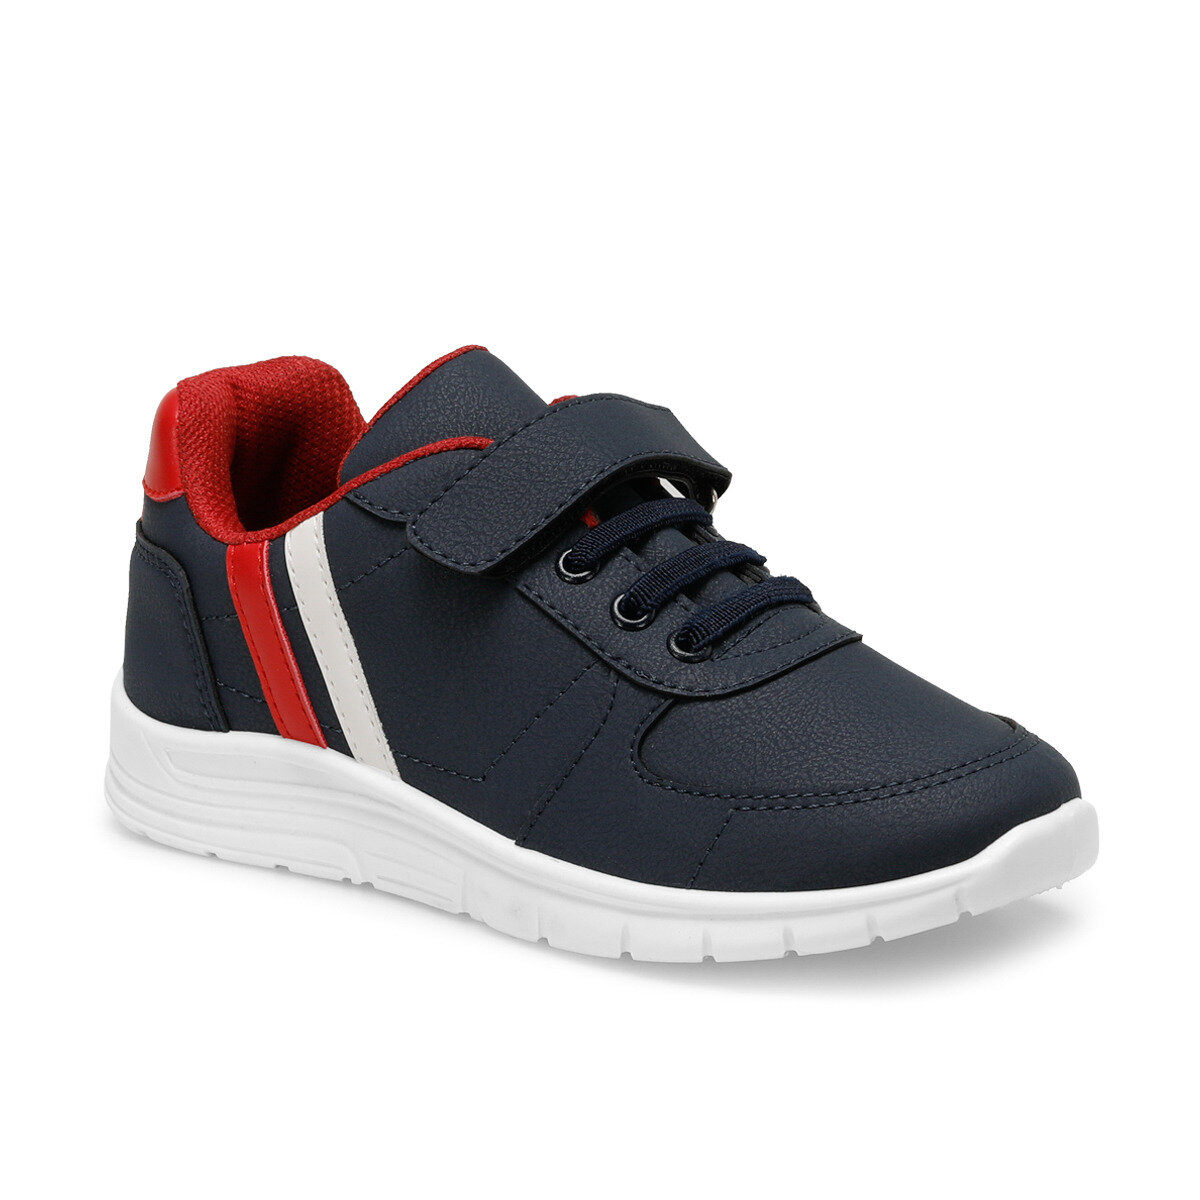 FLO DEMBA Navy Blue Male Child Hiking Shoes I-Cool